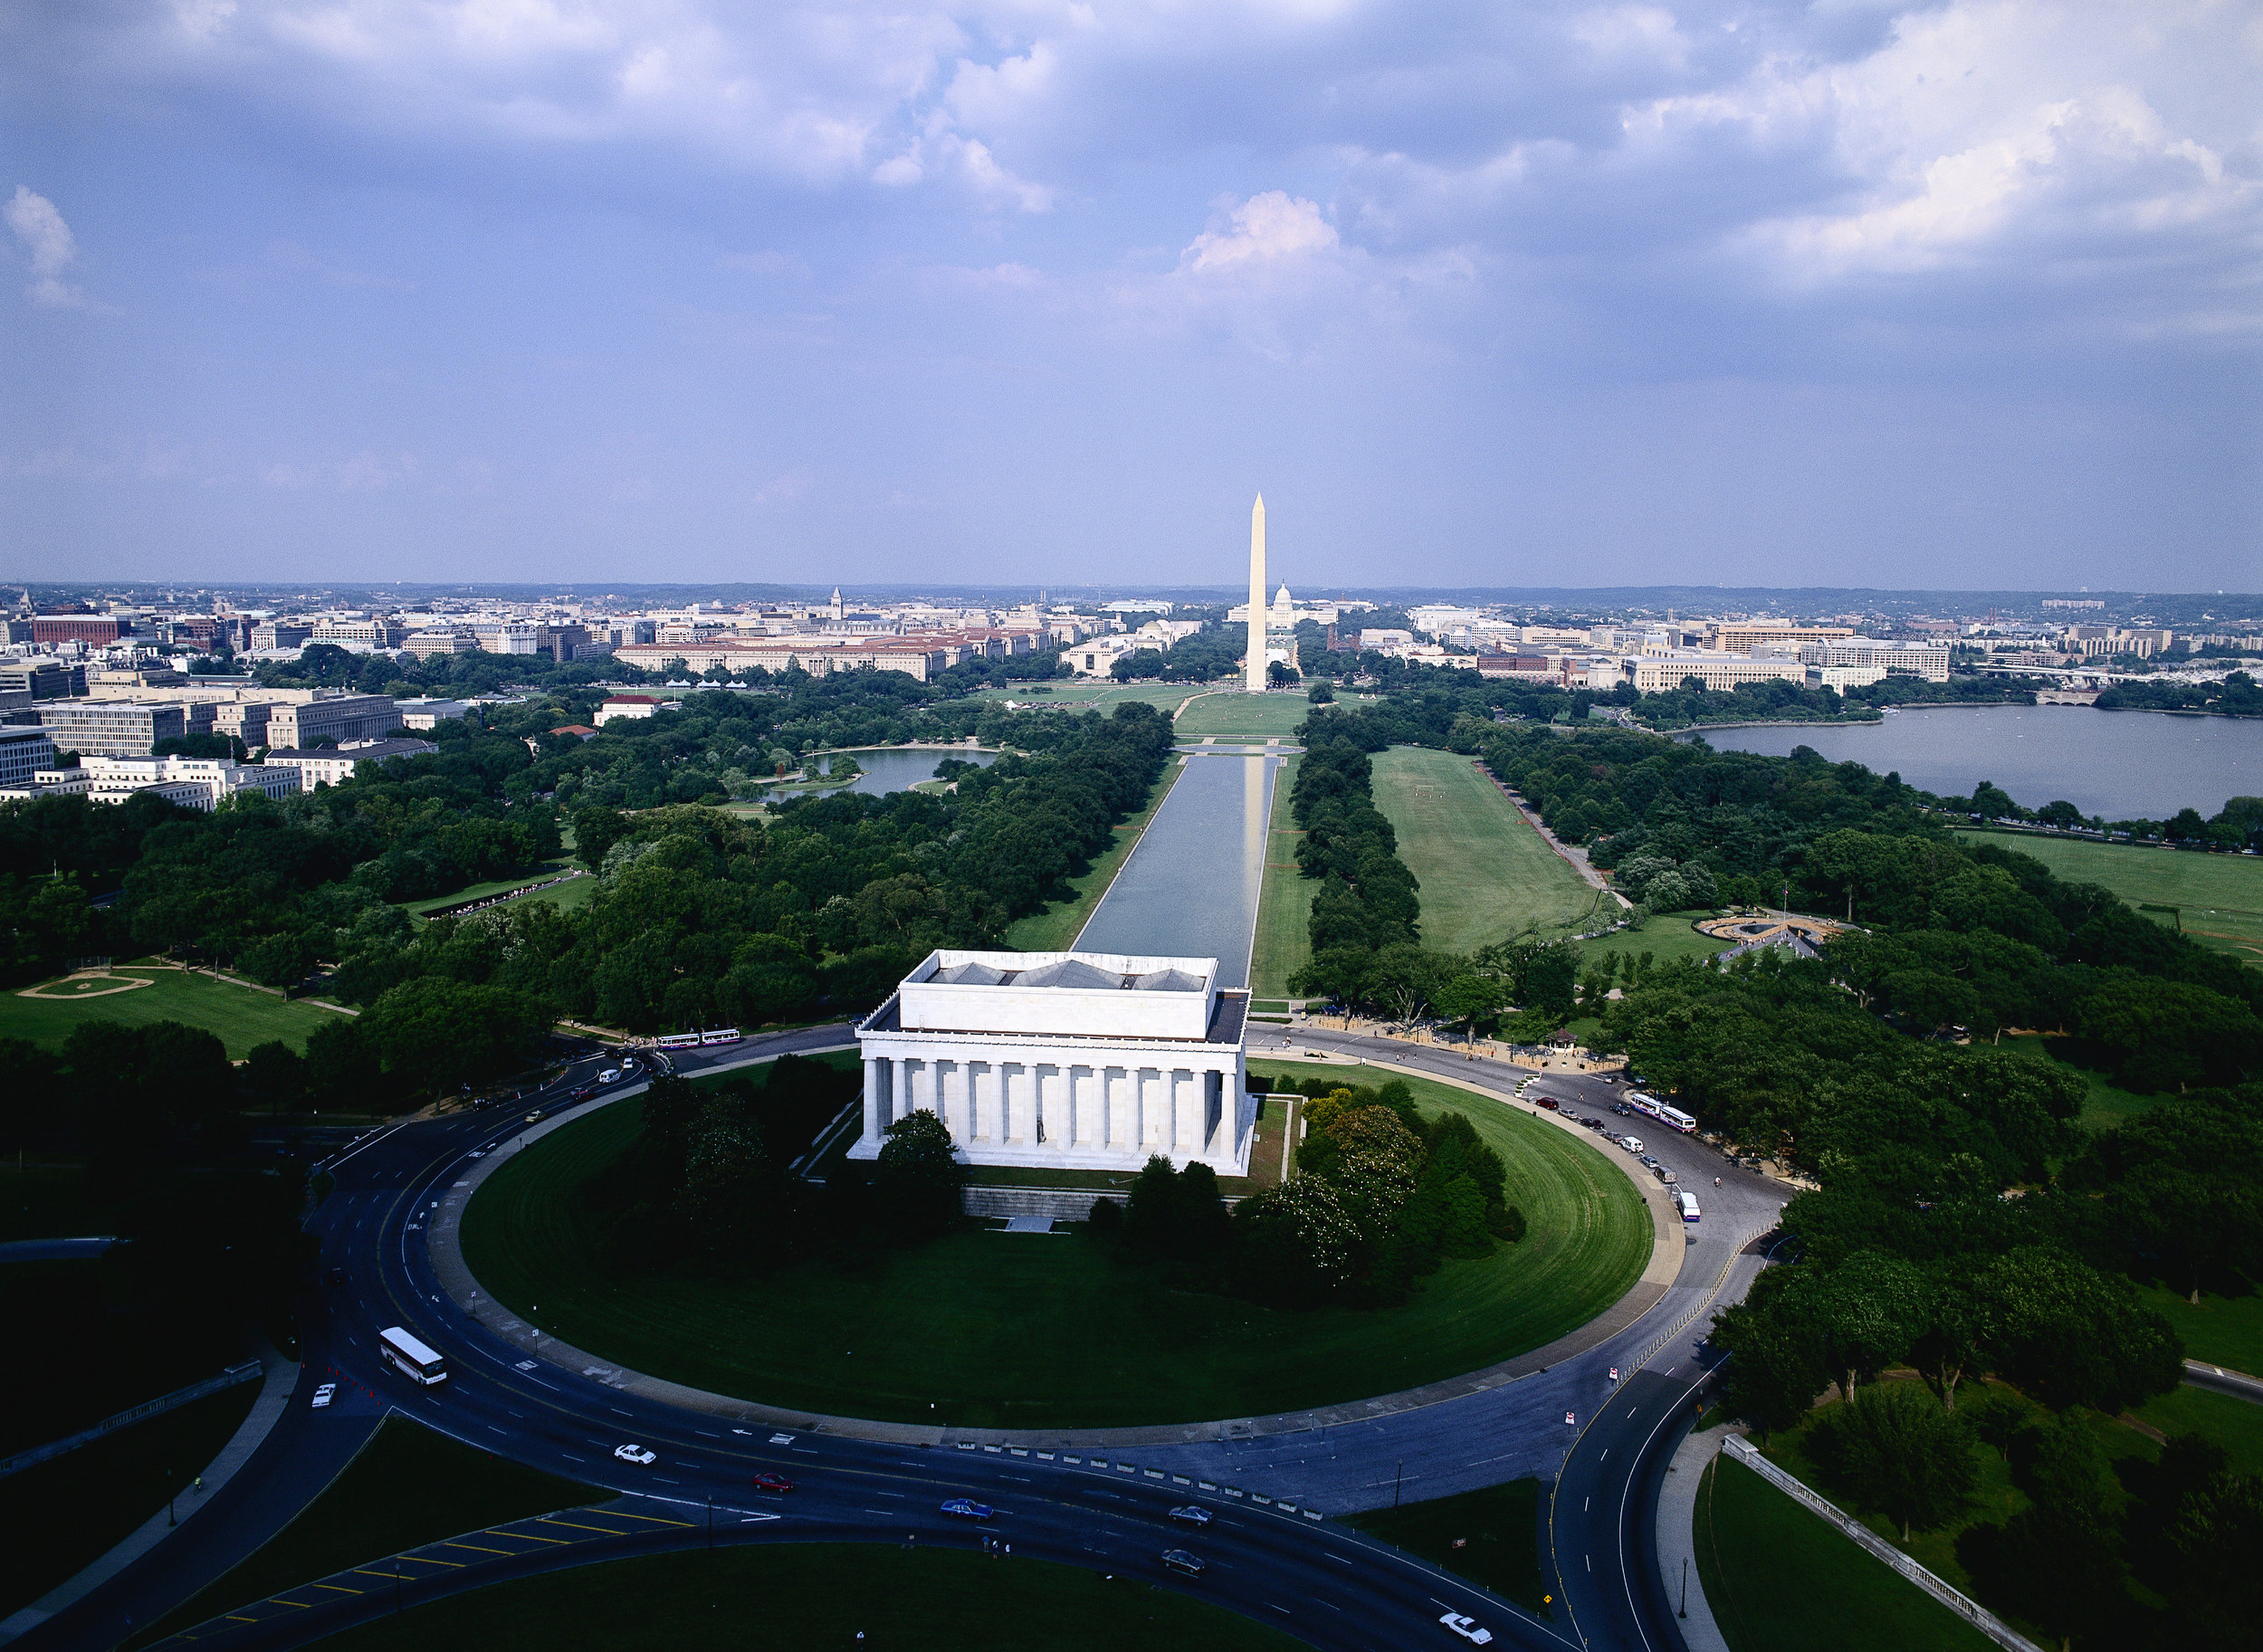 district-of-columbia-lincoln-memorial-washington-monument.jpg